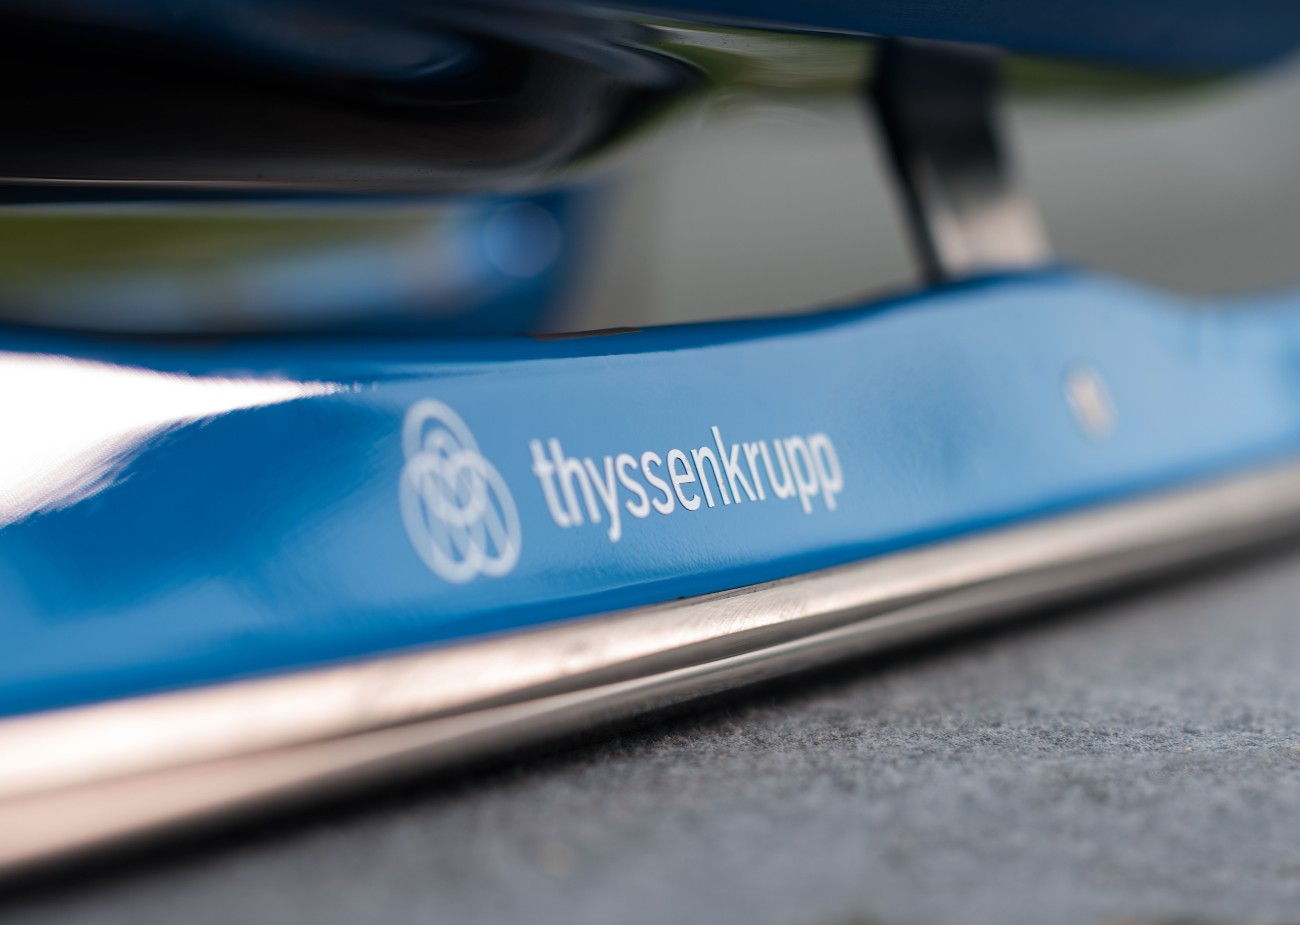 The luge's runners and racing pod were made by thyssenkrupp Presta Camshafts